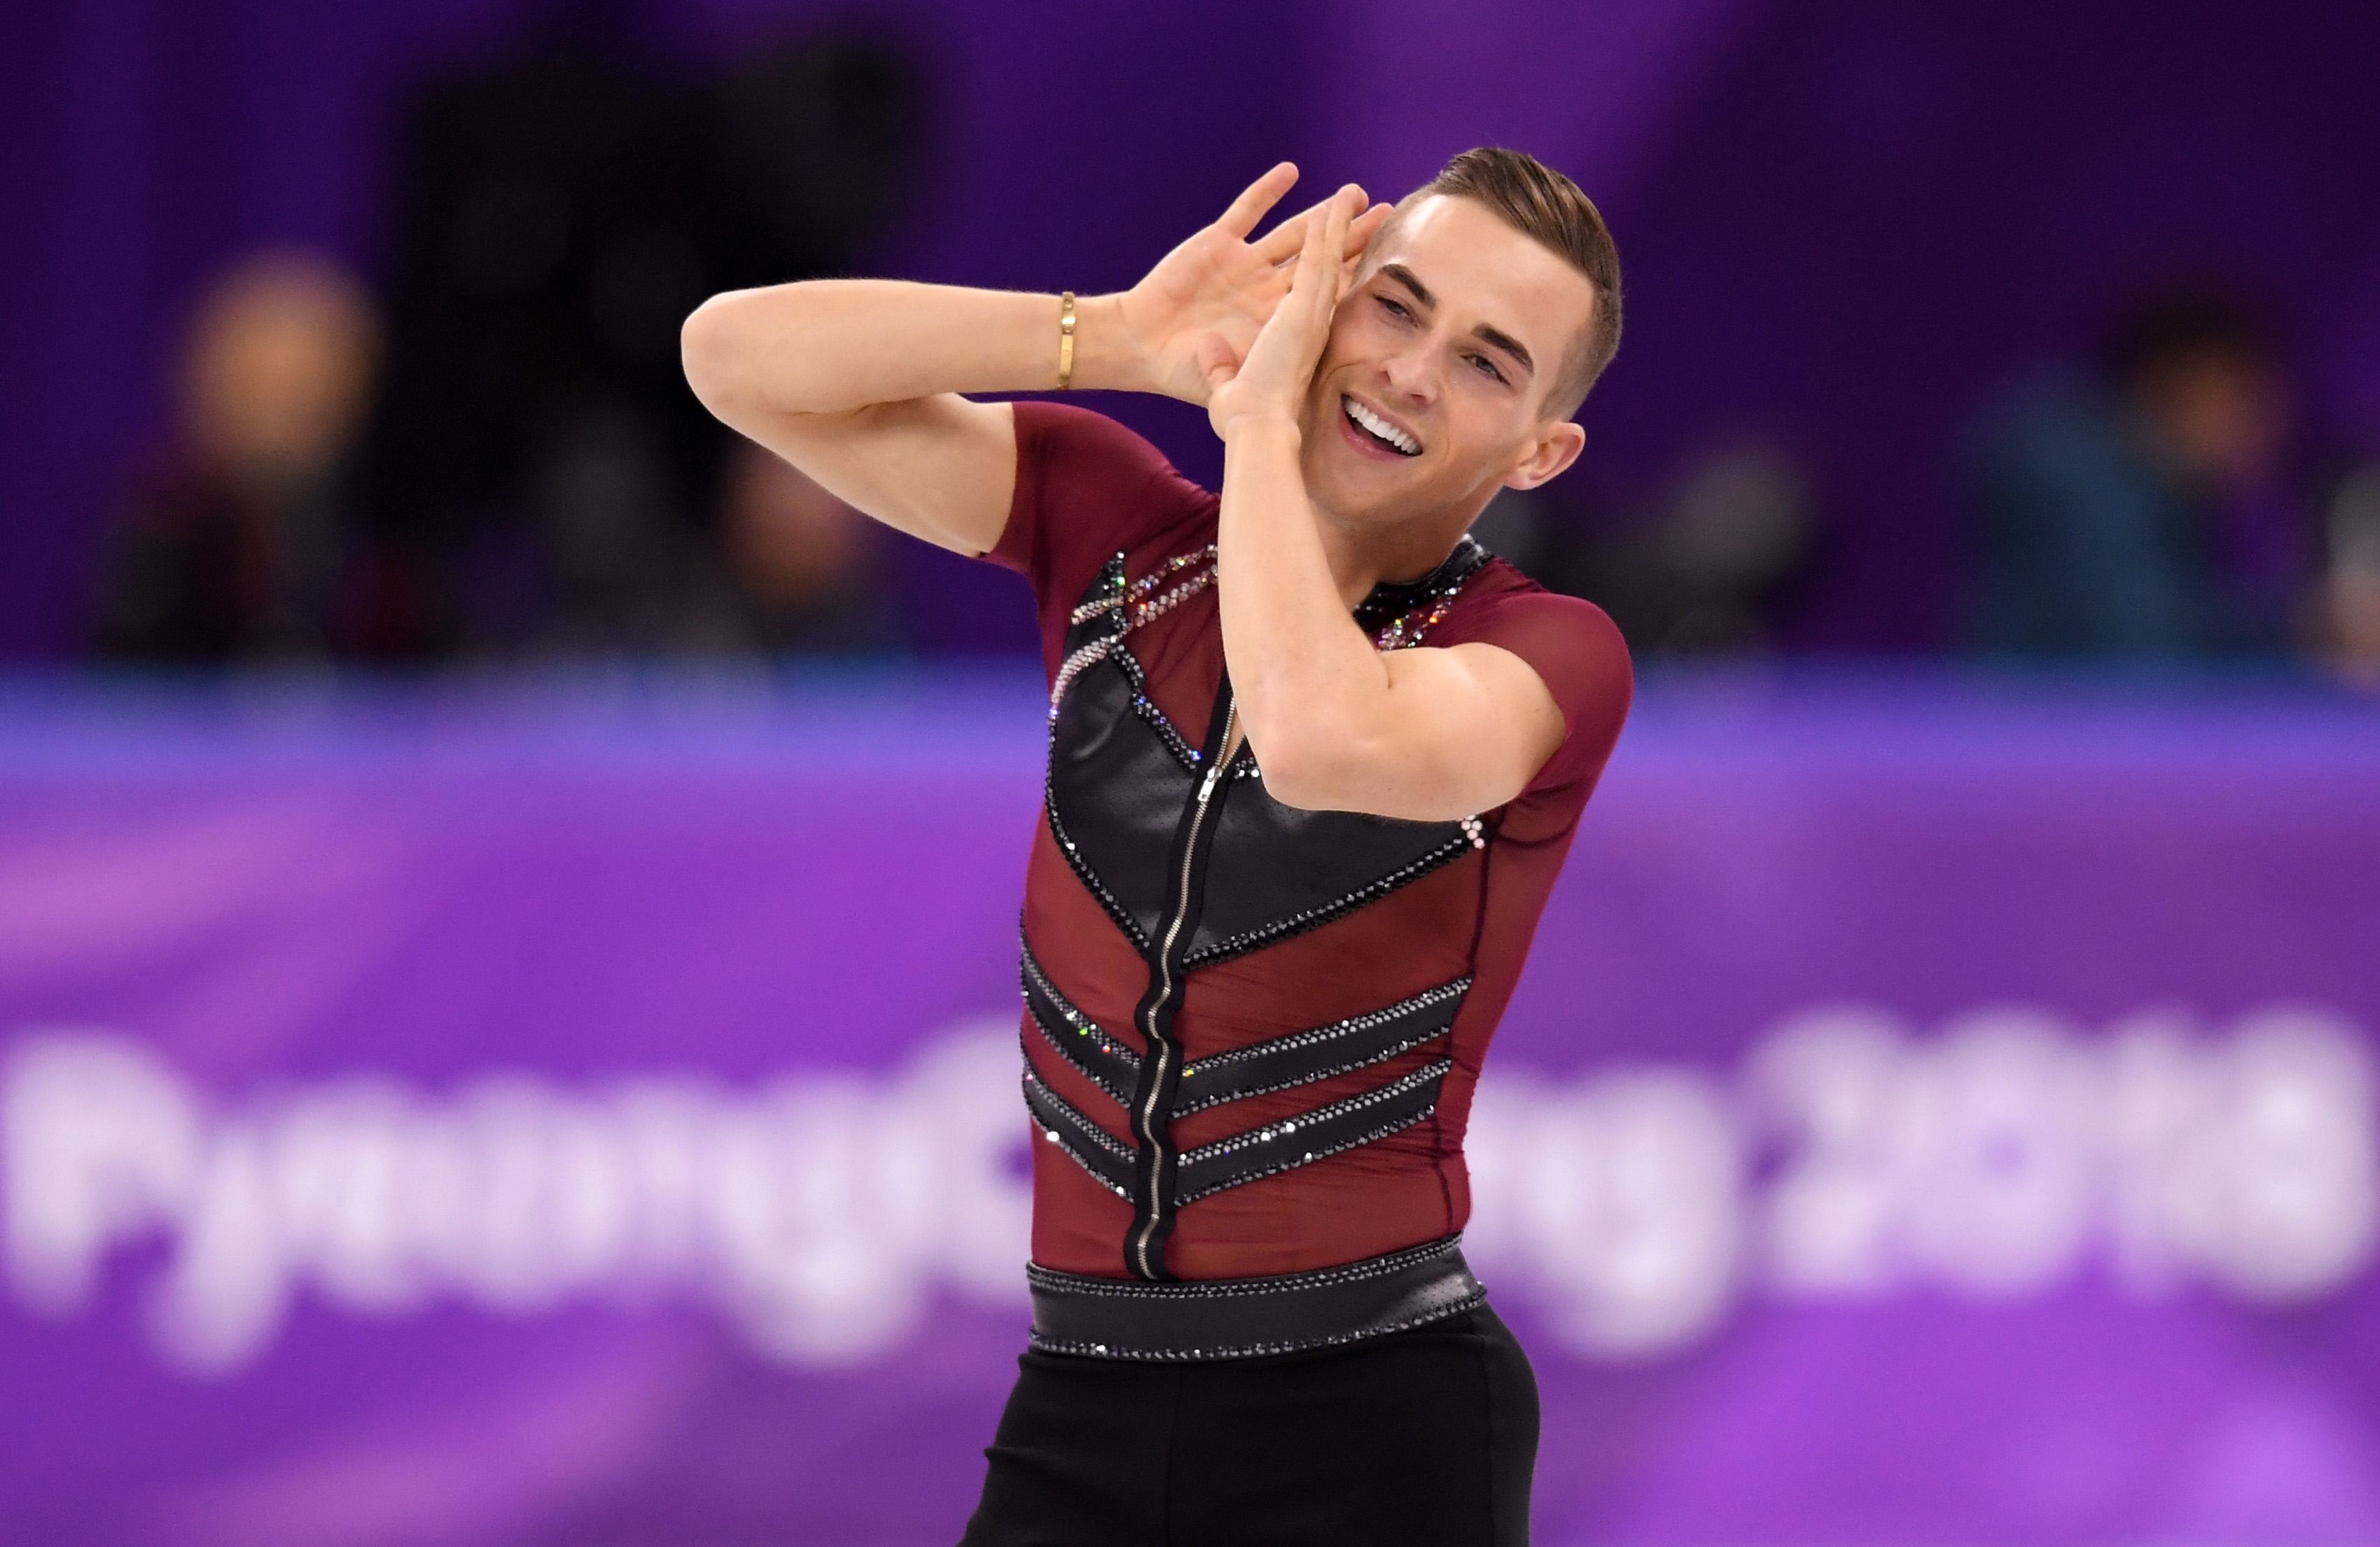 GANGNEUNG, SOUTH KOREA - FEBRUARY 16: Adam Rippon of the United States competes during the Men's Single Skating Short Program at Gangneung Ice Arena on February 16, 2018 in Gangneung, South Korea. (Photo by Harry How/Getty Images)